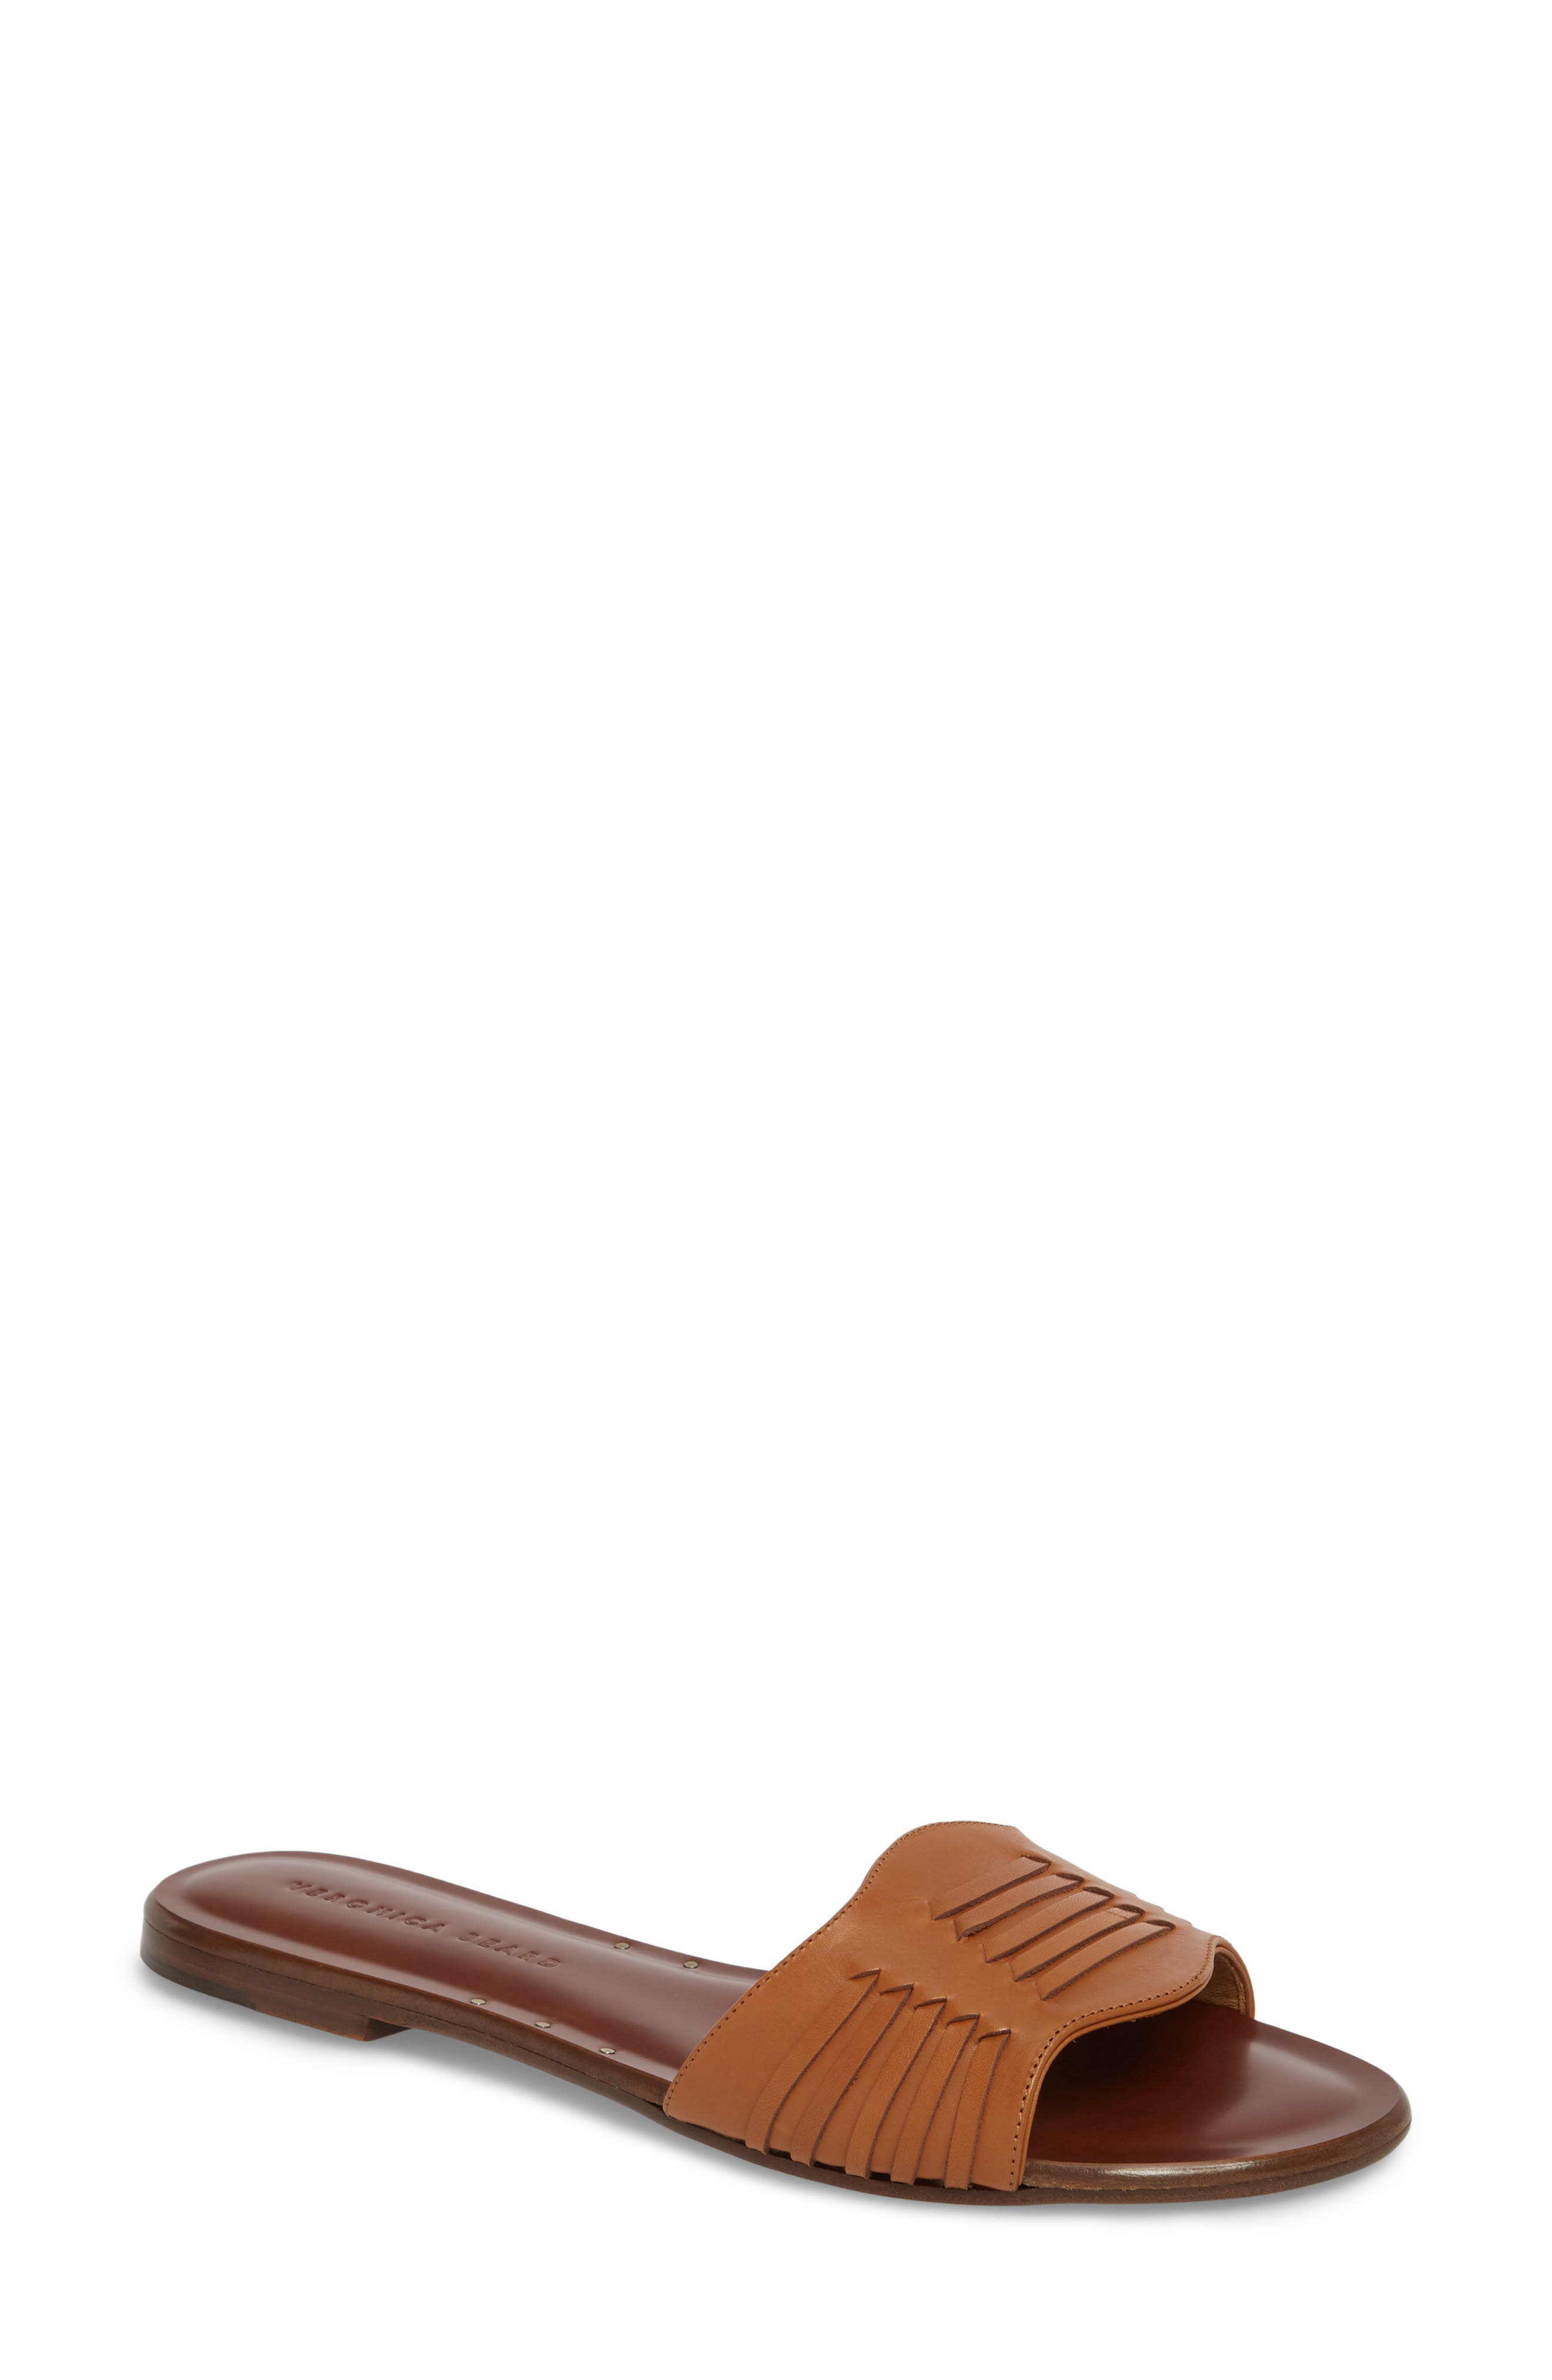 Veronica Beard Faven Woven Slide Sandal (Women)